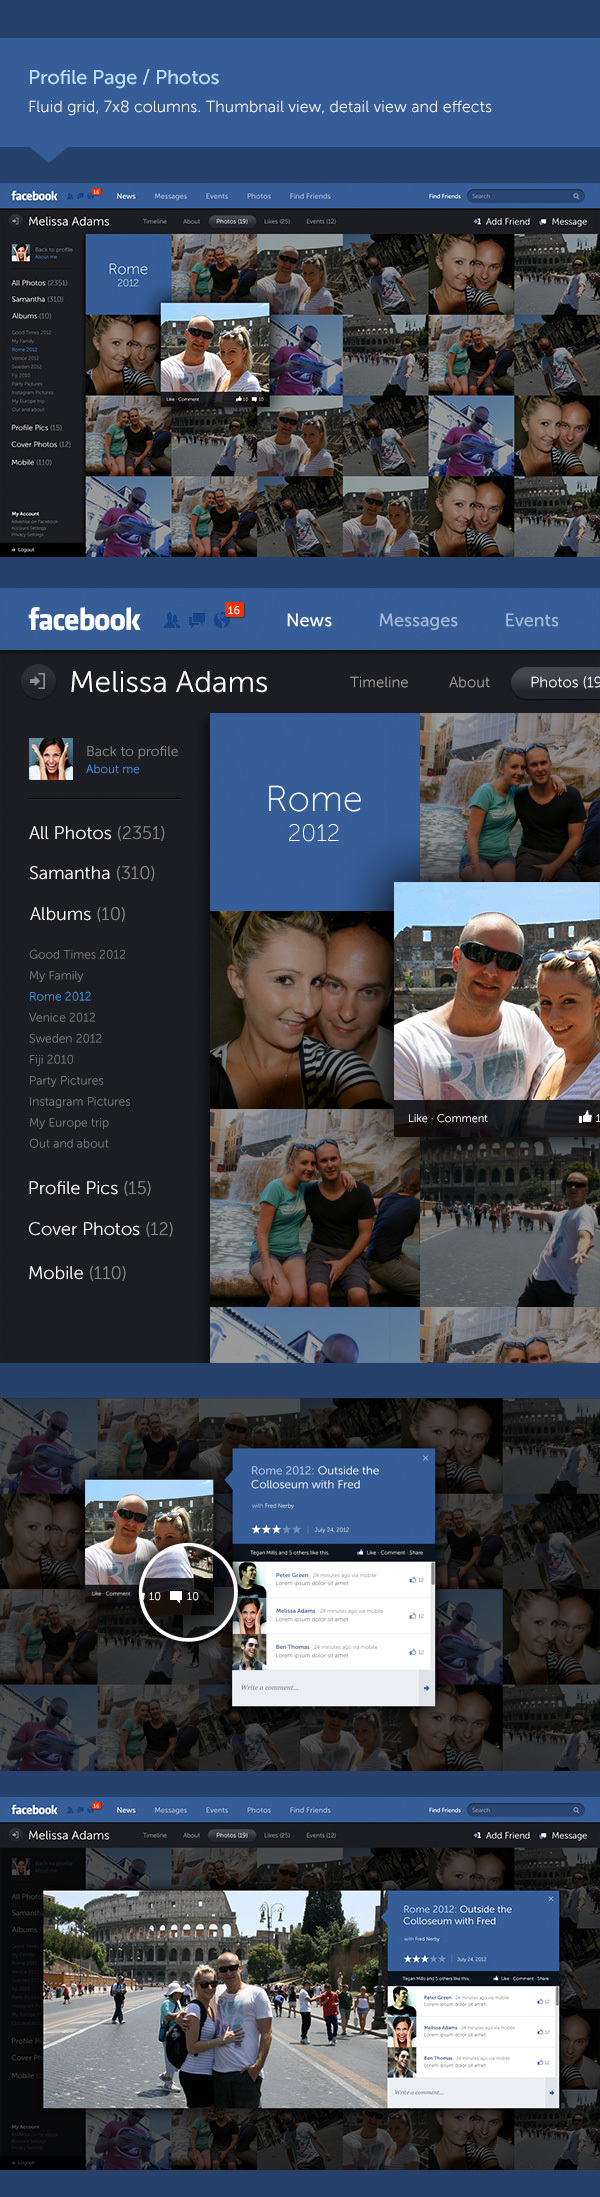 facebook-proposta-redesign-interface-06